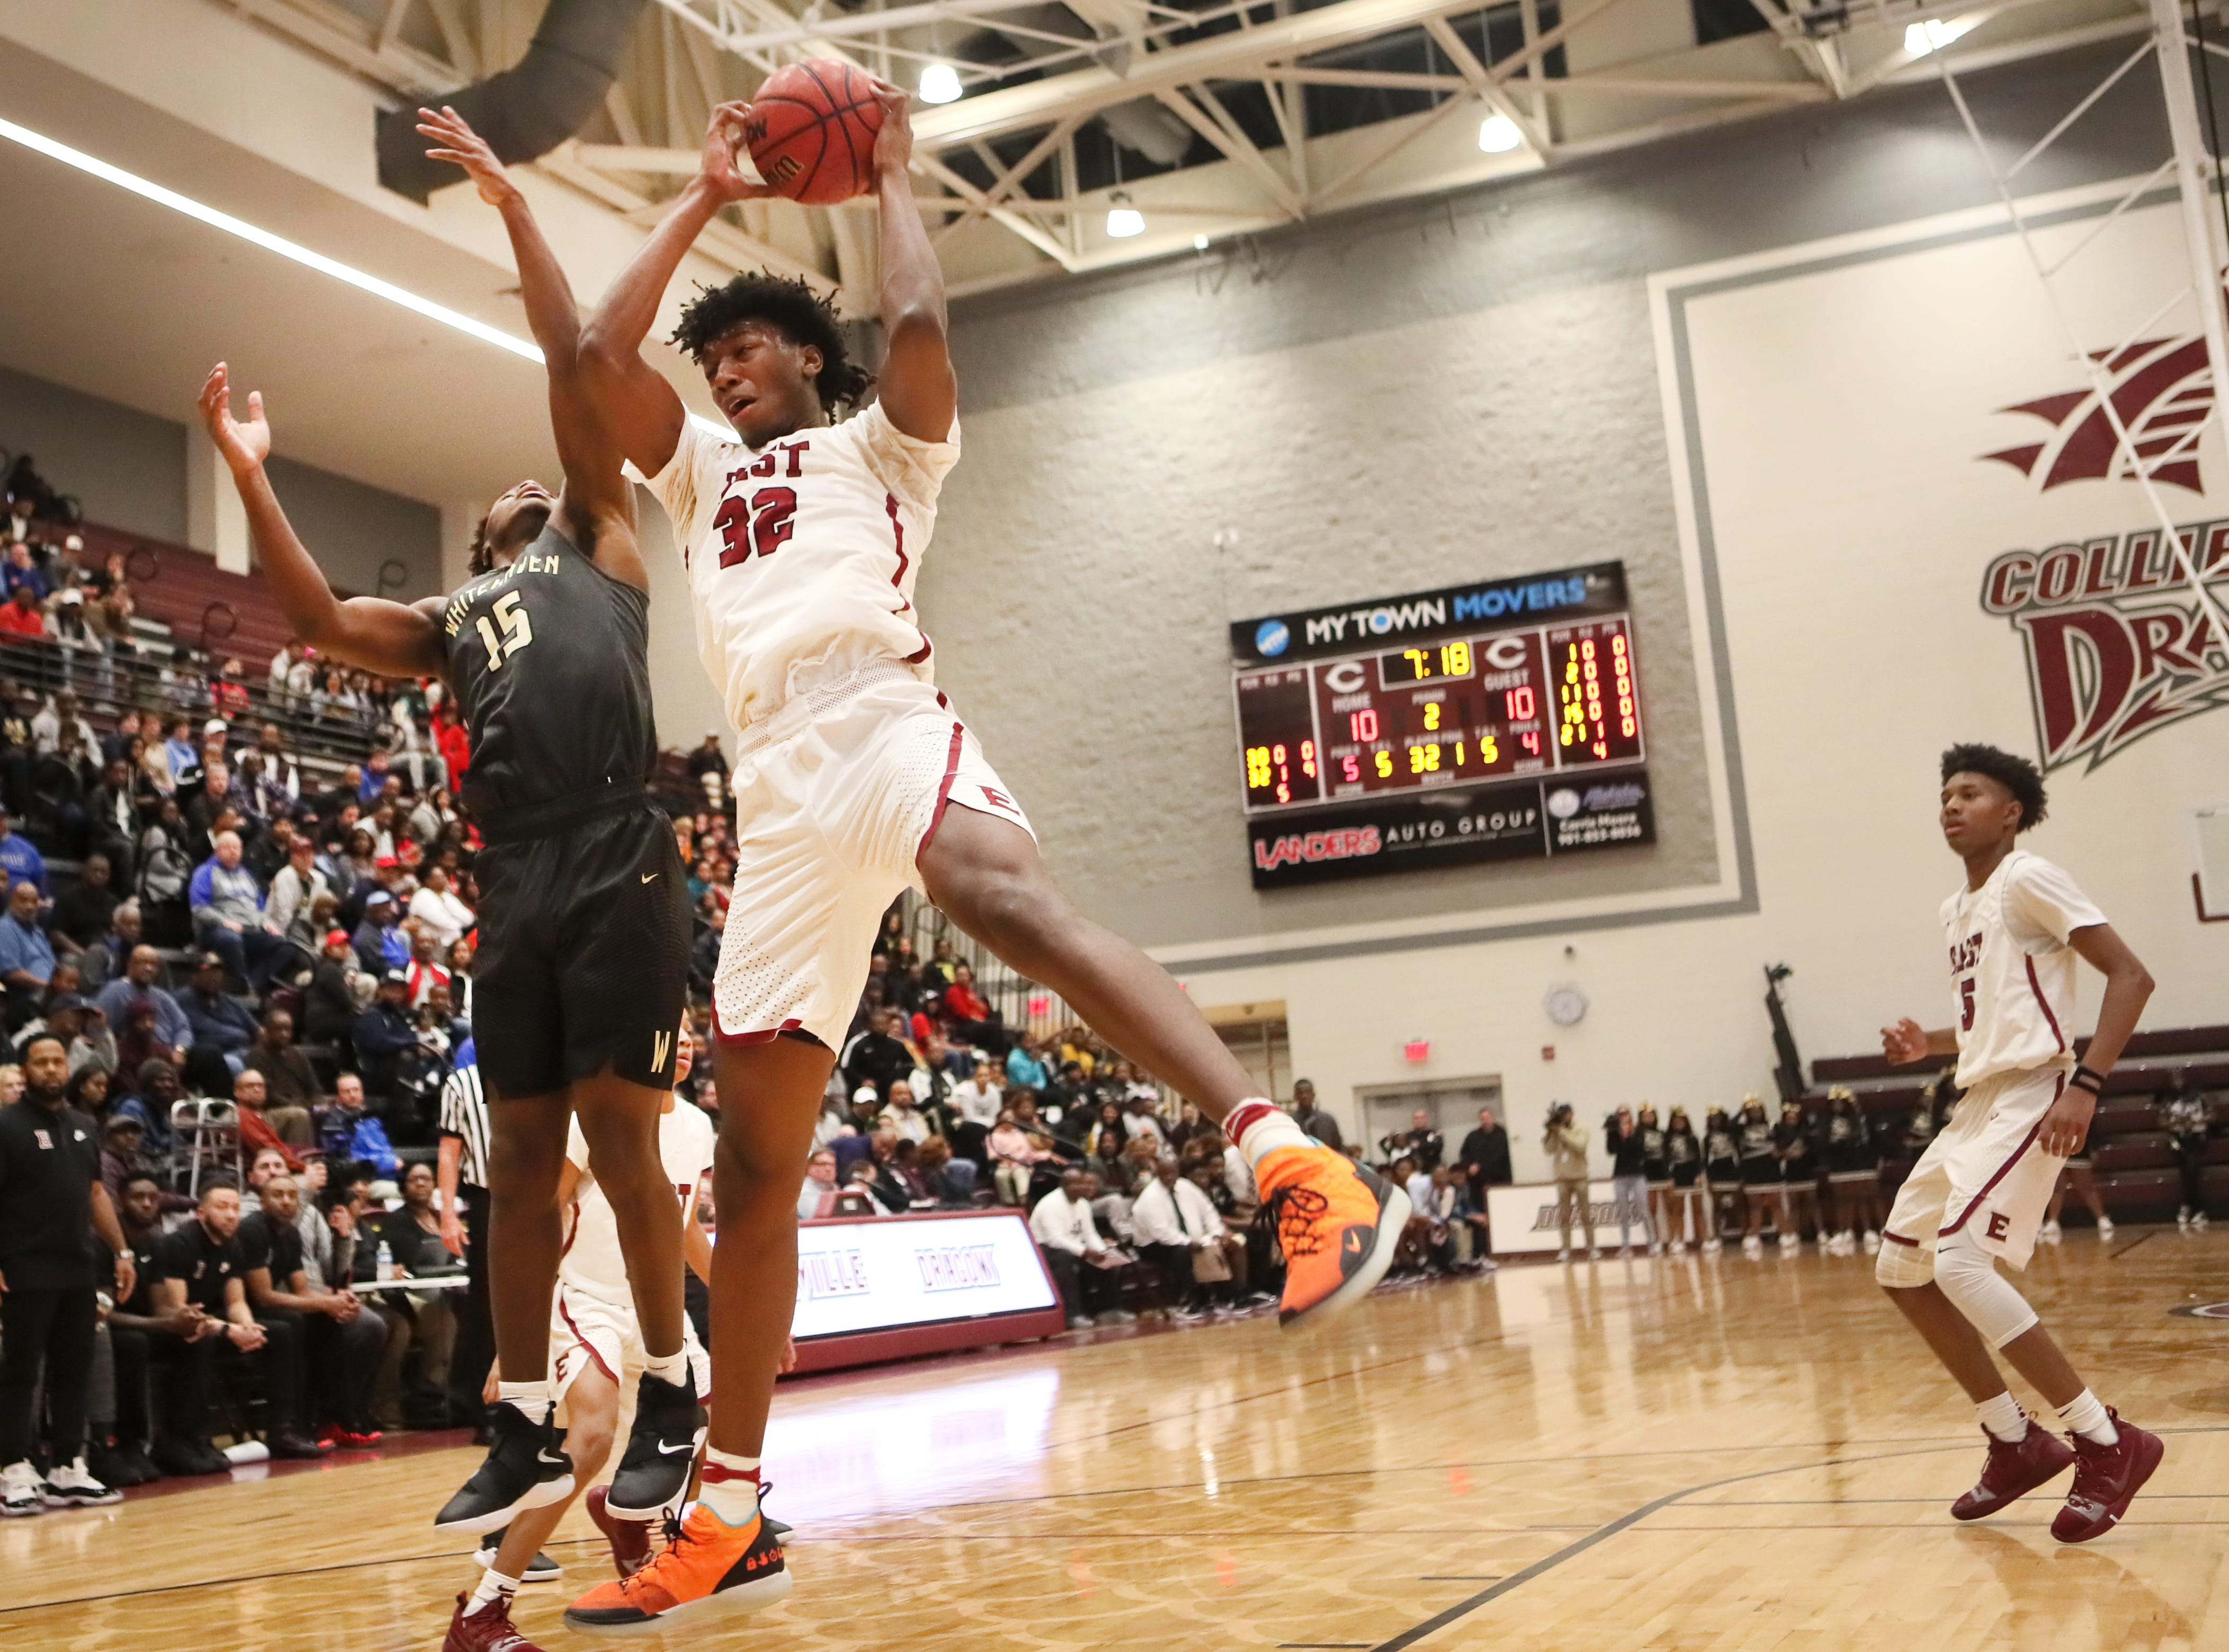 Memphis East's James Wiseman grabs a rebound against Whitehaven during their Region 8AAA Championship game at Collierville High School on Thursday, Feb. 28, 2019.